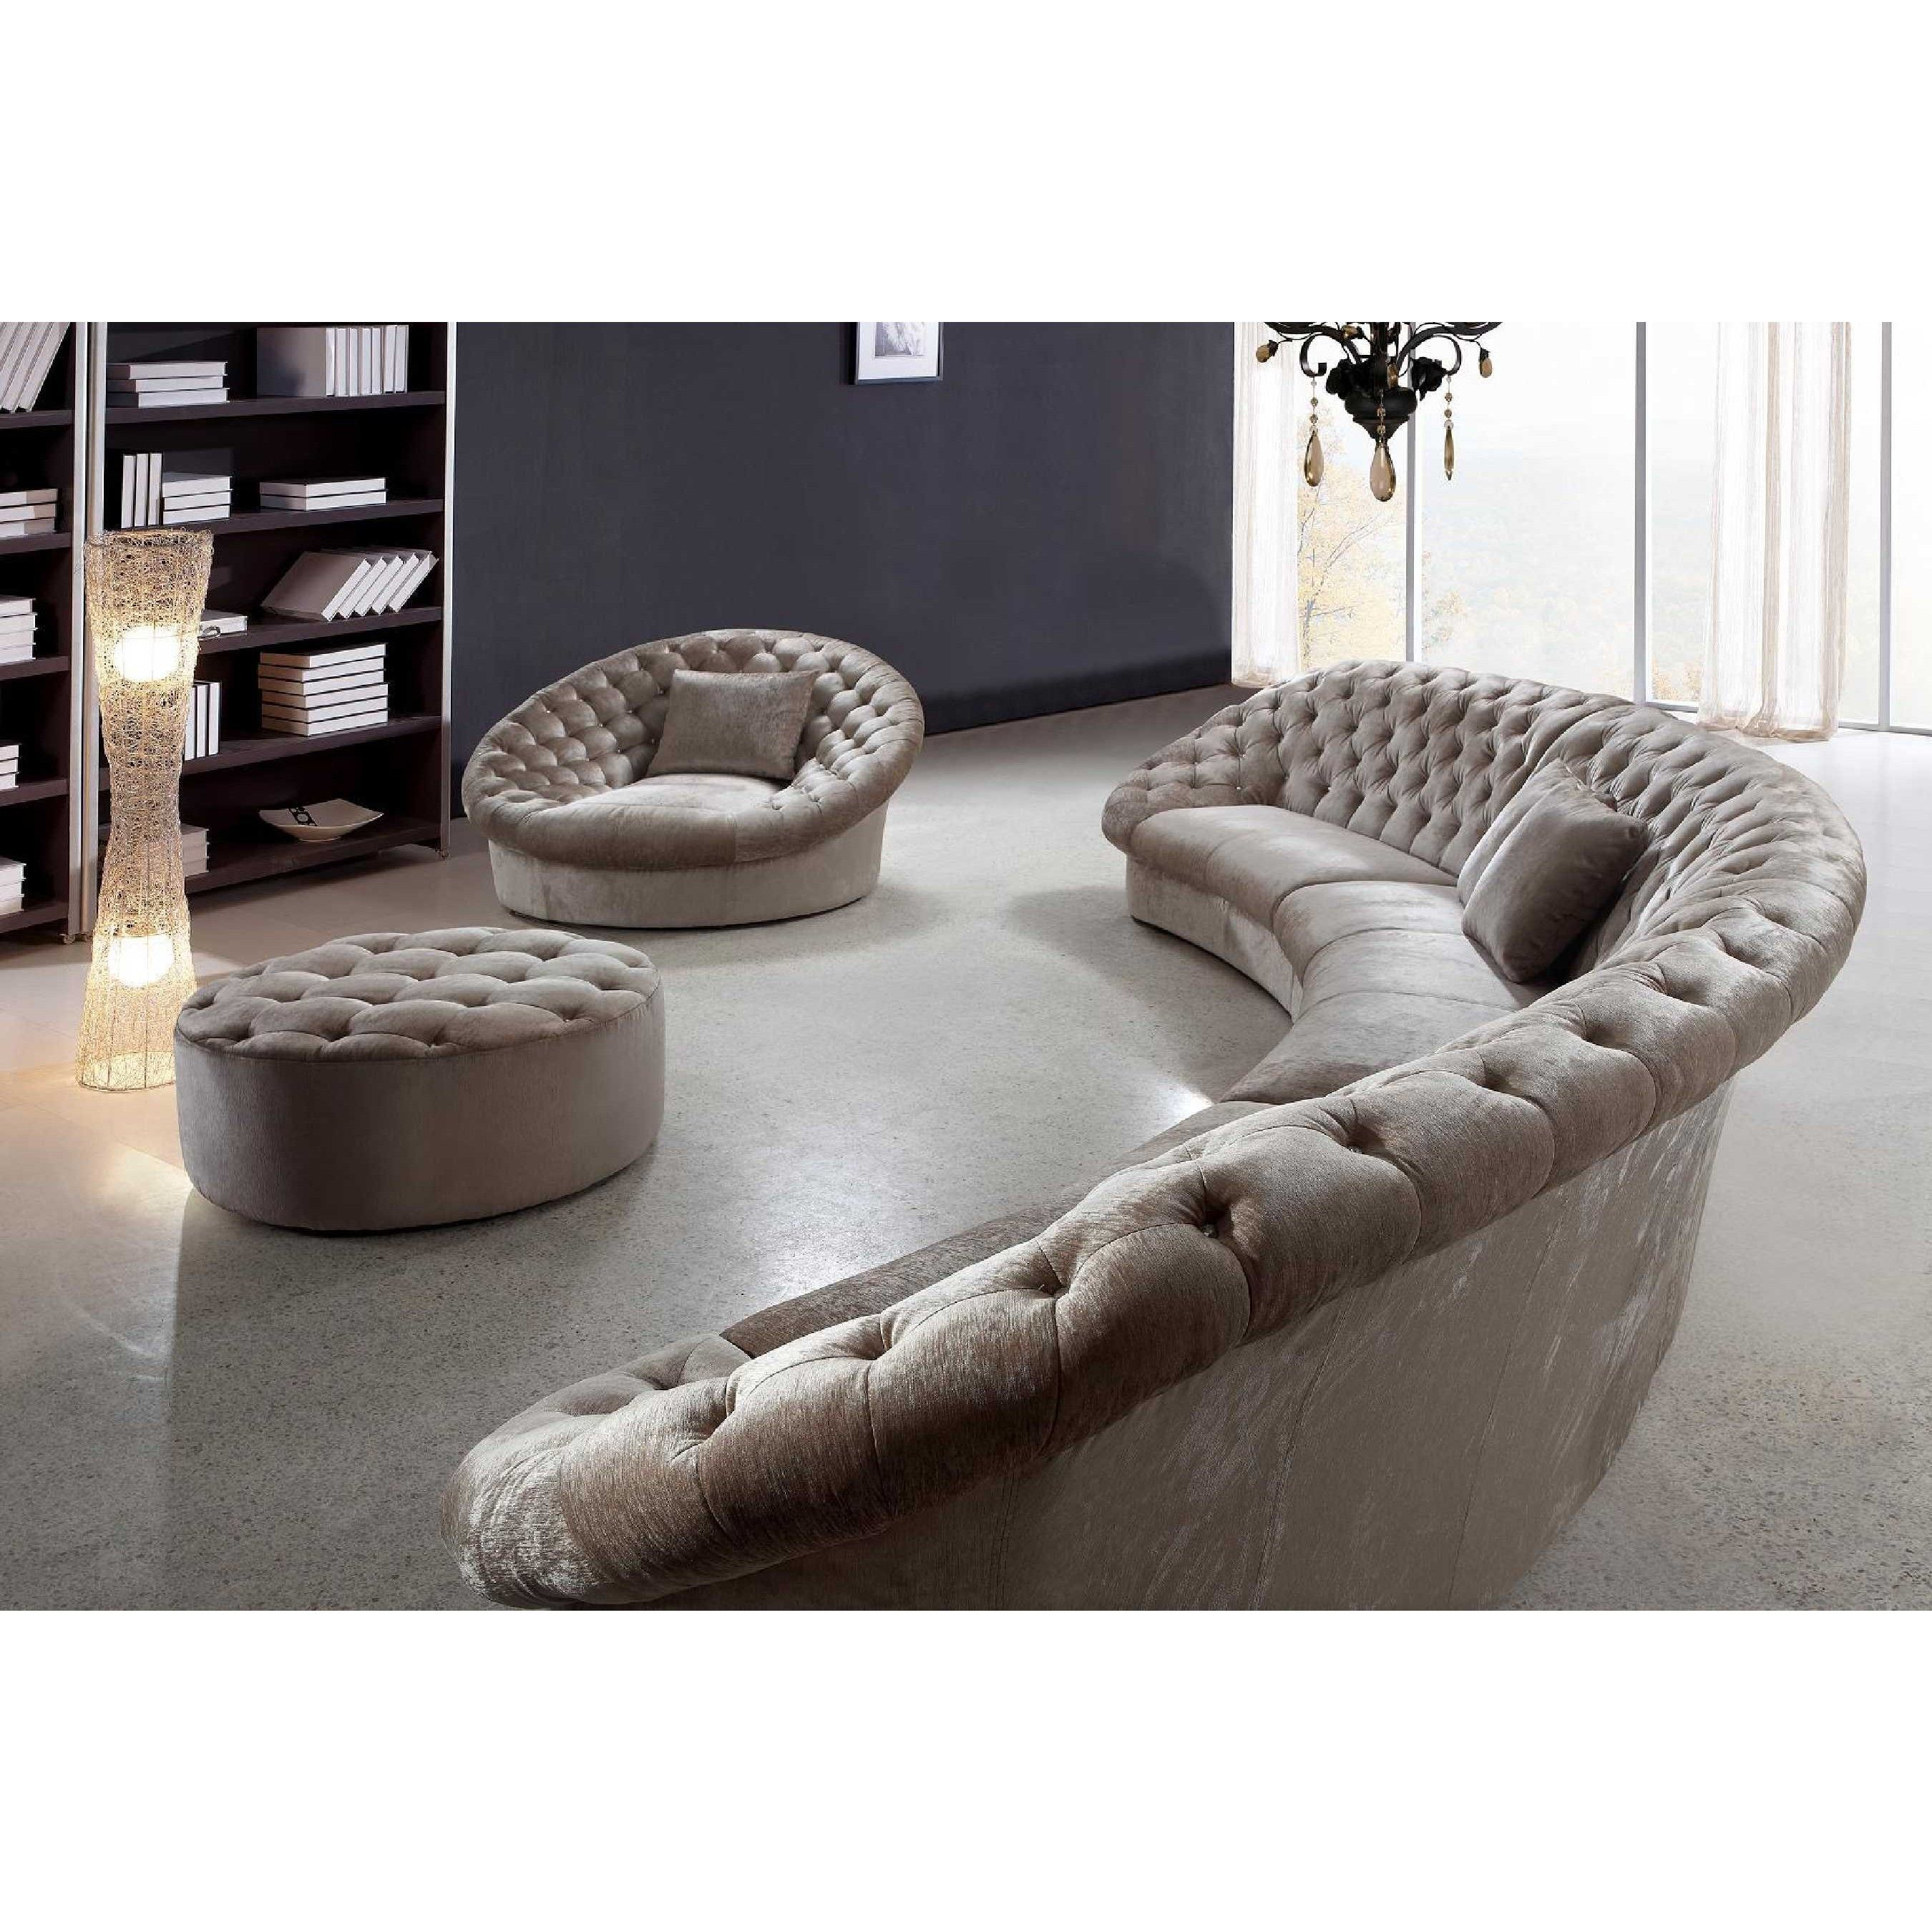 Curved Sectional Leather Sofa Curved Sectional Circle Couch Rh Pinterest Com